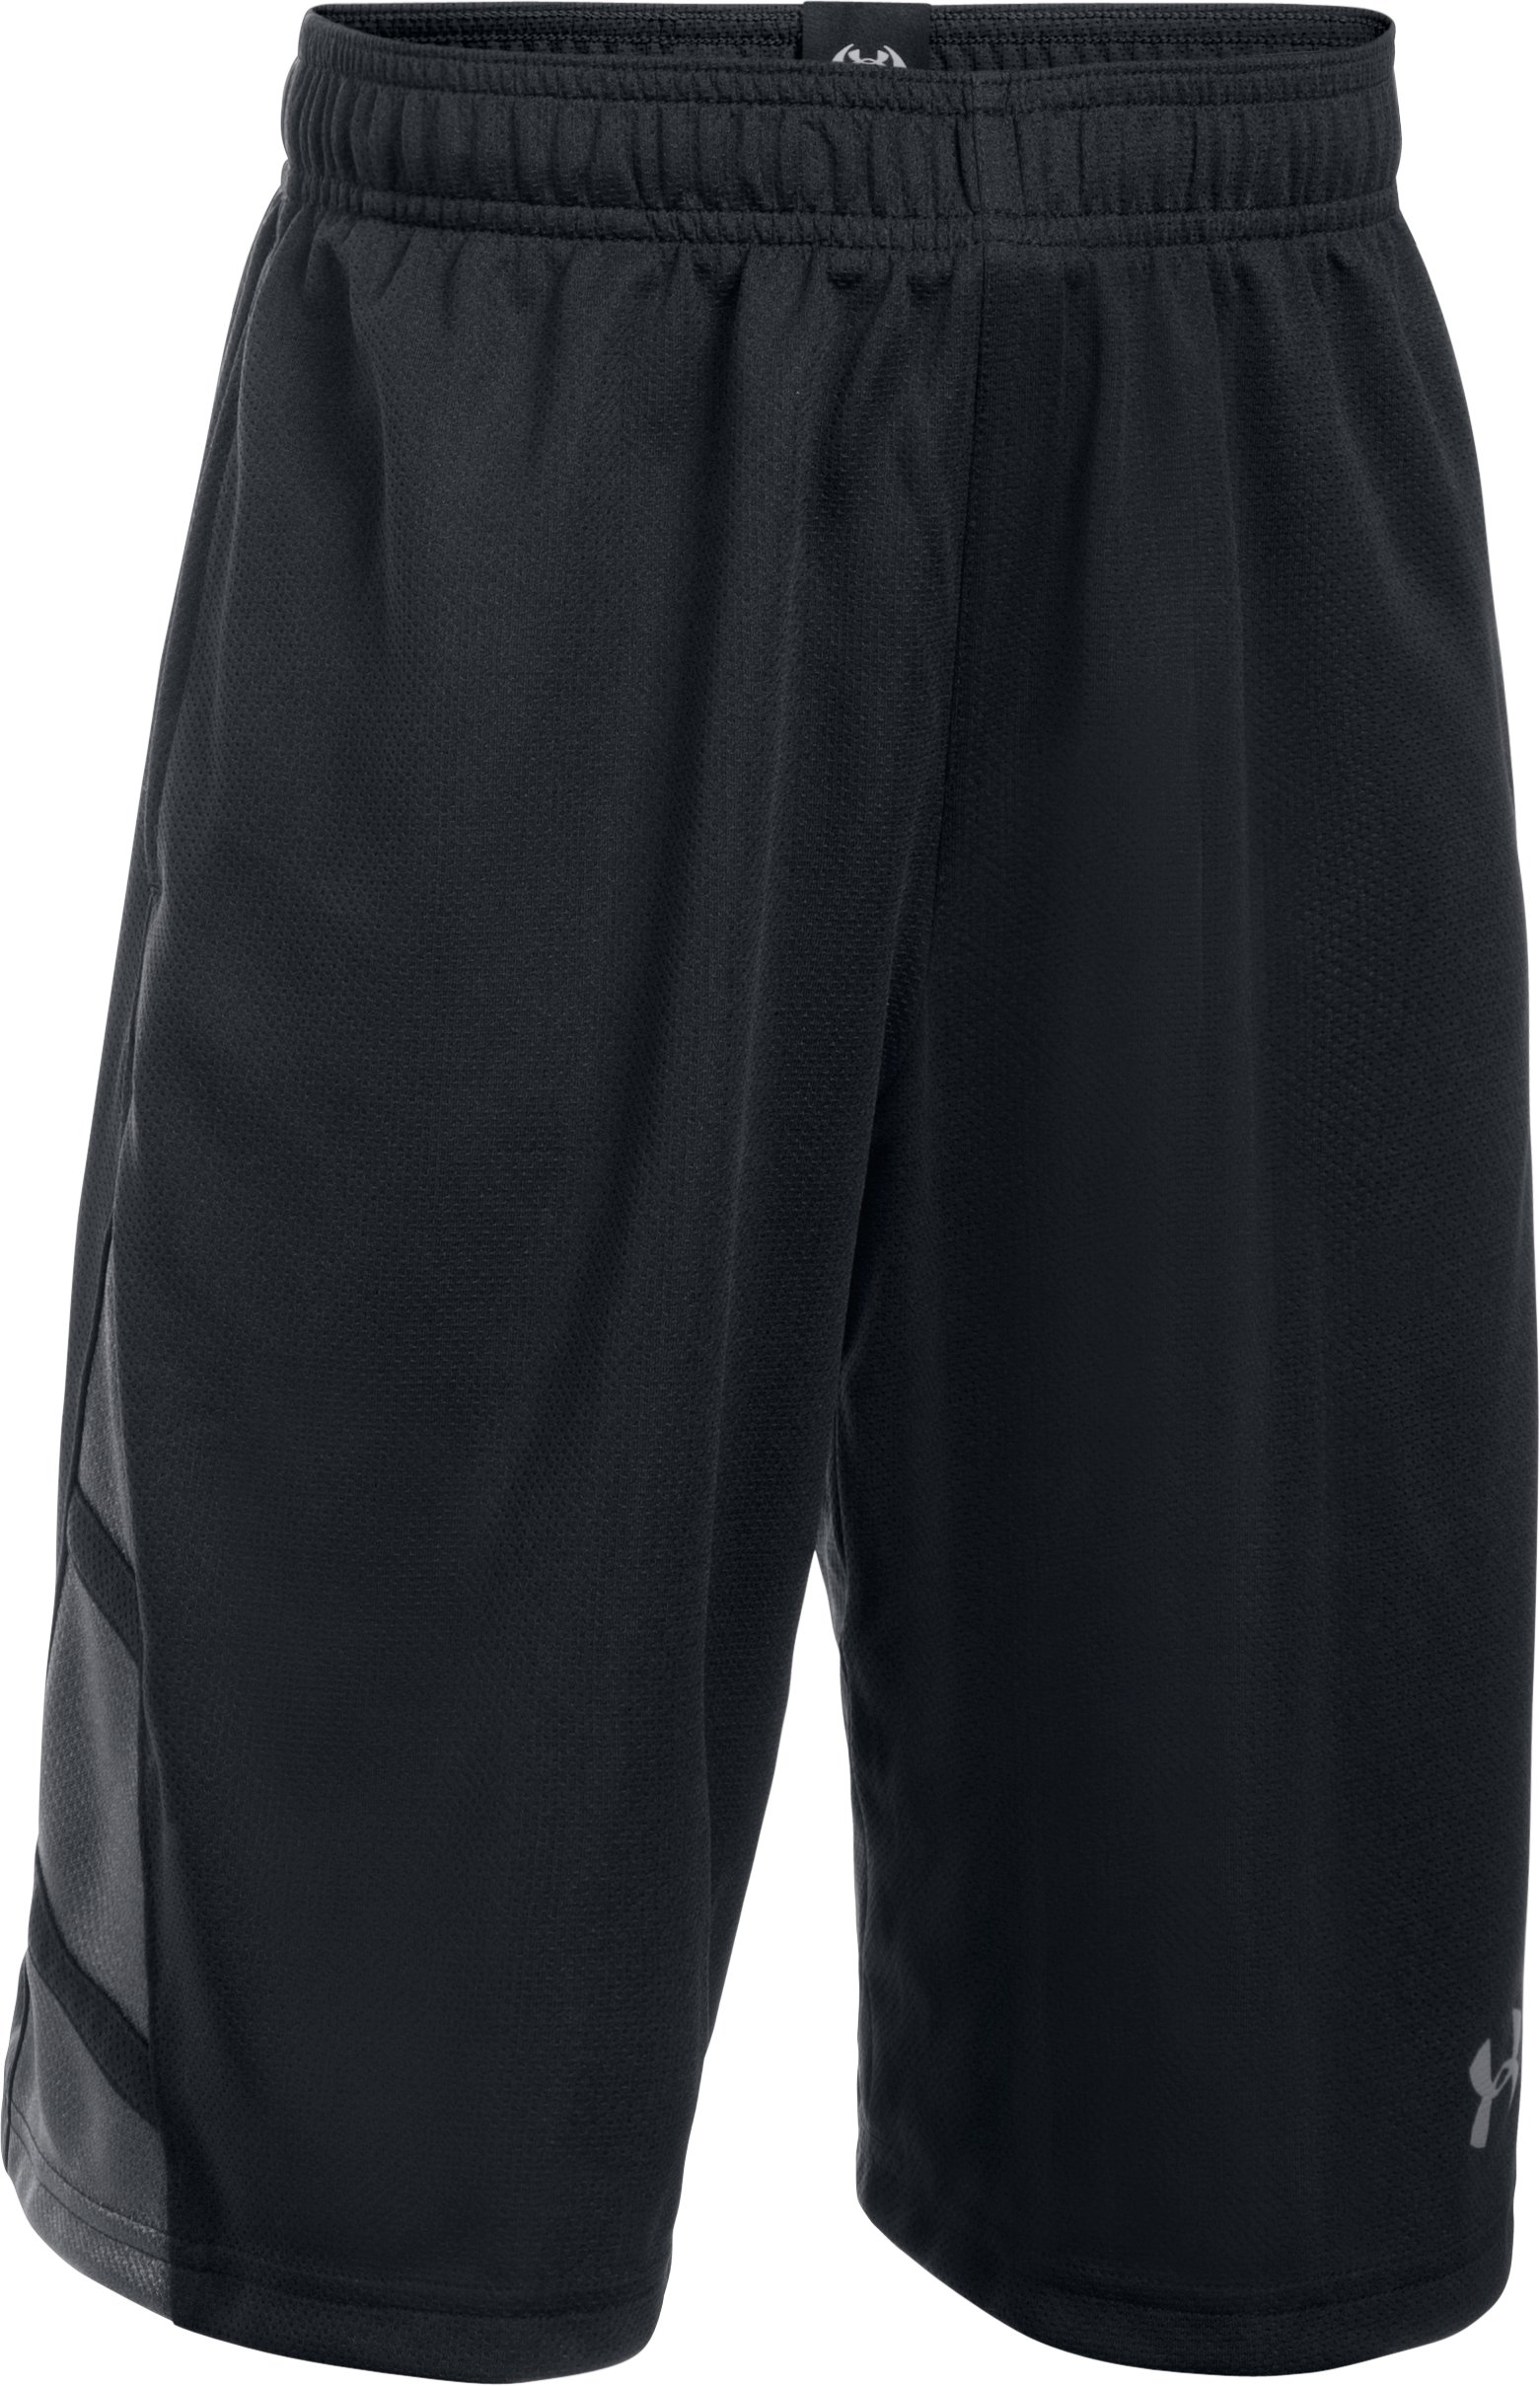 Boys' UA Triple Double Shorts, Black ,